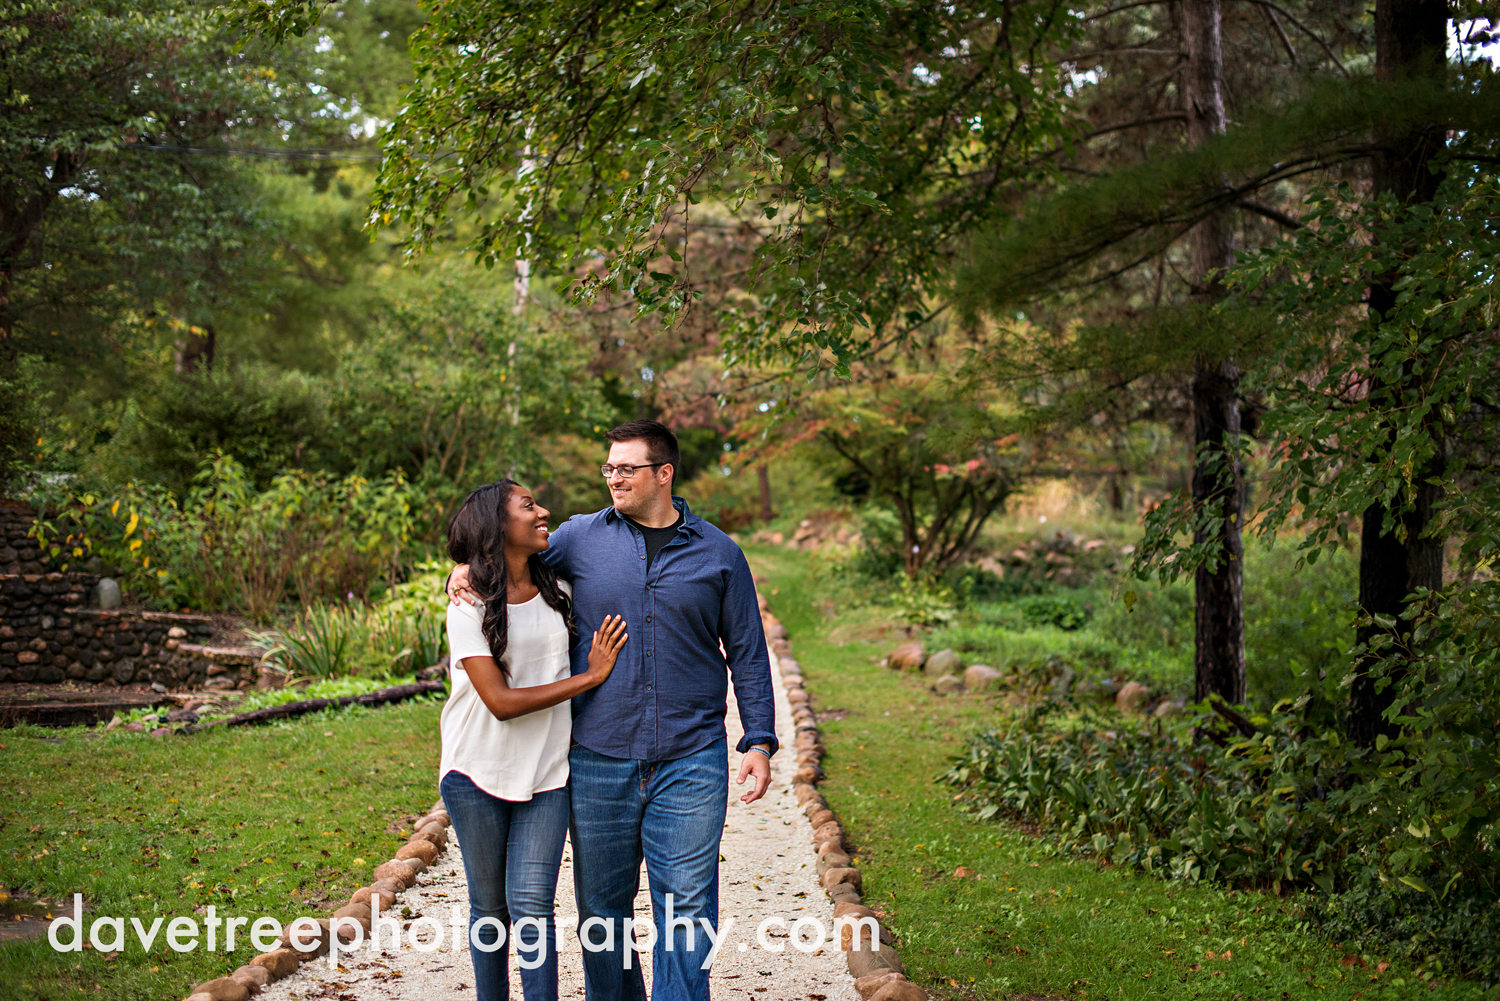 kalamazoo_wedding_photographer_kalamazoo_engagement_photographer_11.jpg